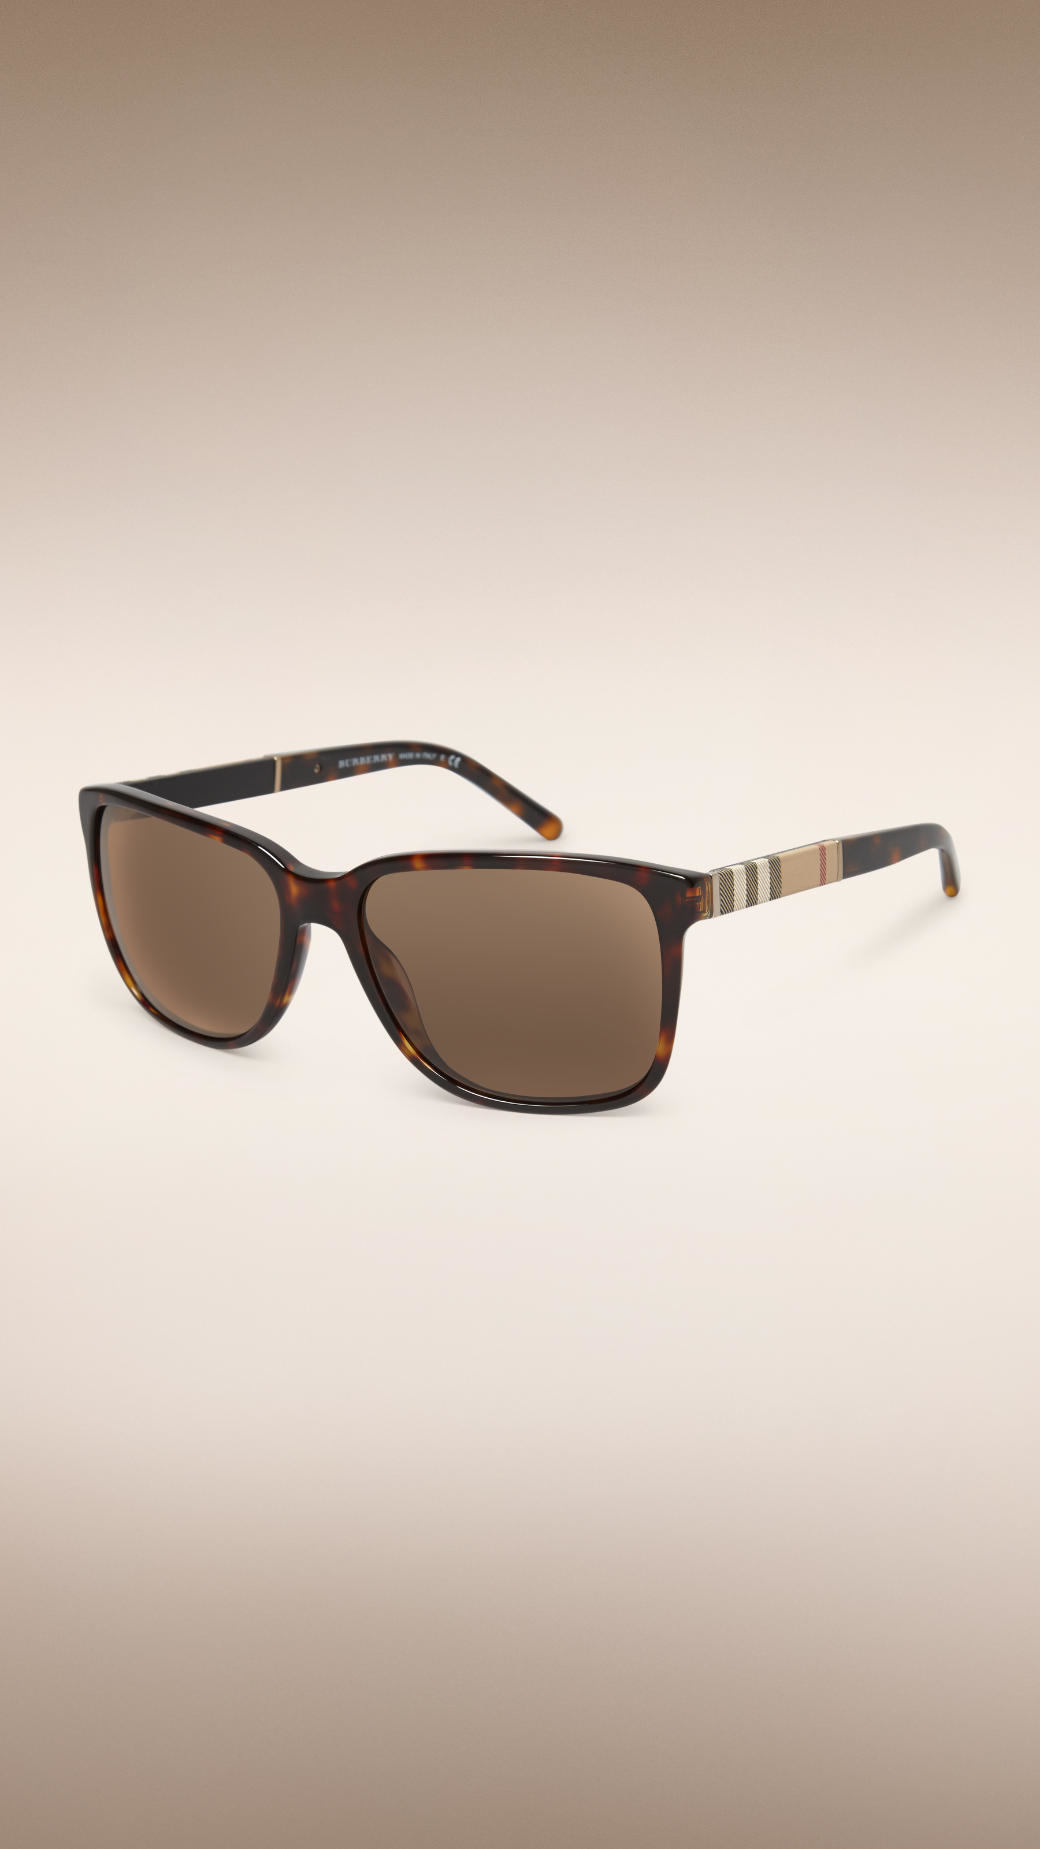 d4a9ca833cb Lyst - Burberry Square Frame Check Detail Sunglasses in Brown for Men